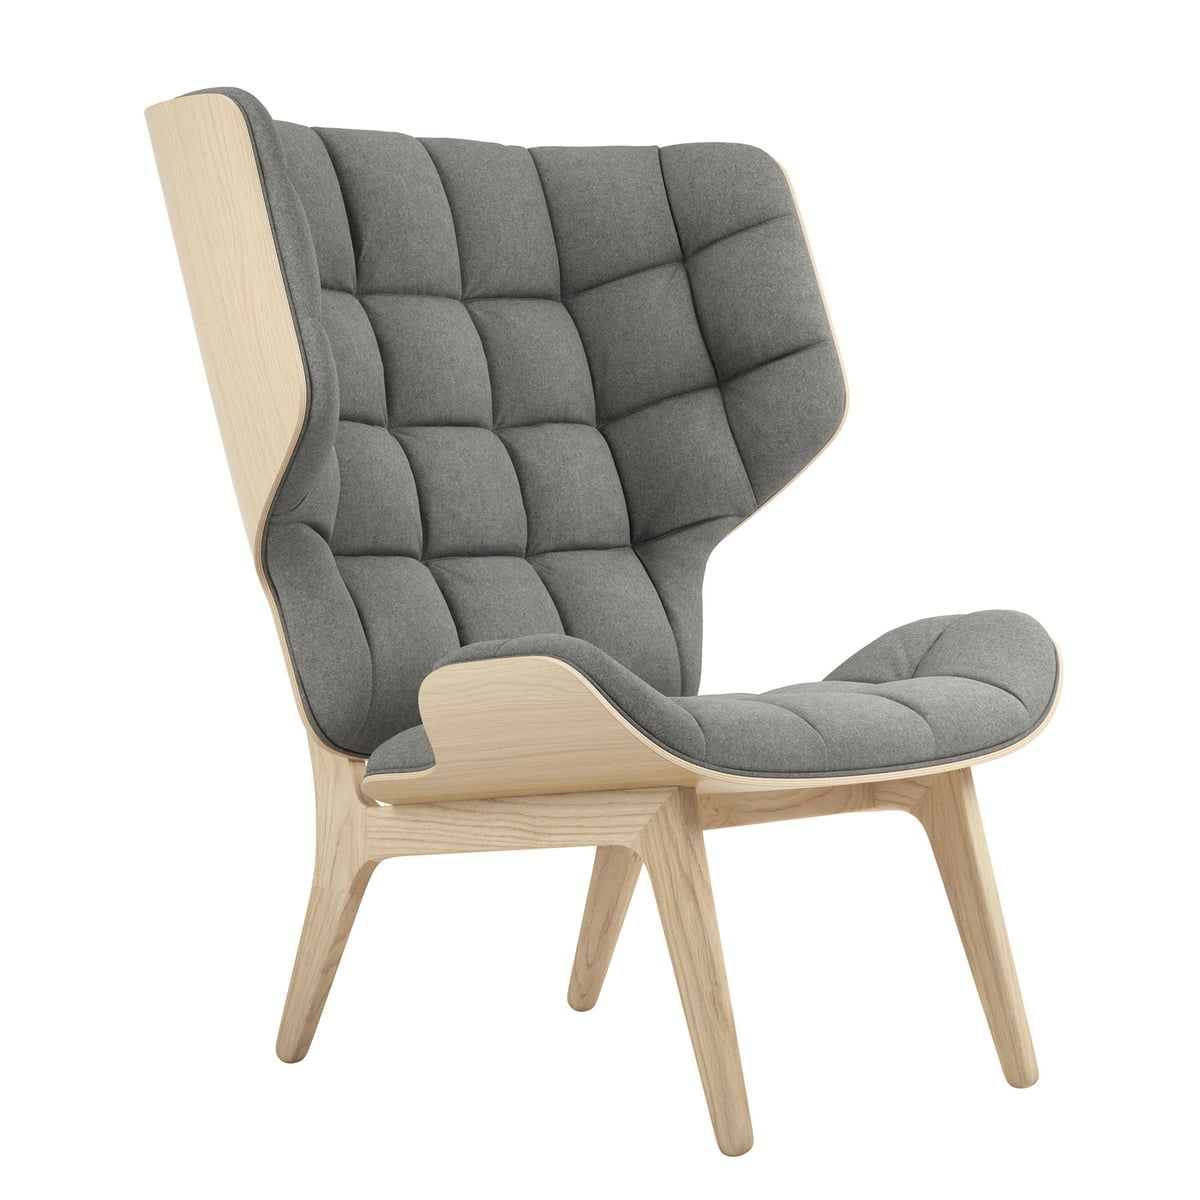 Norr11 Mammoth Lounge Sessel, Eiche natur Wolle hellgrau (Light Grey 1000)